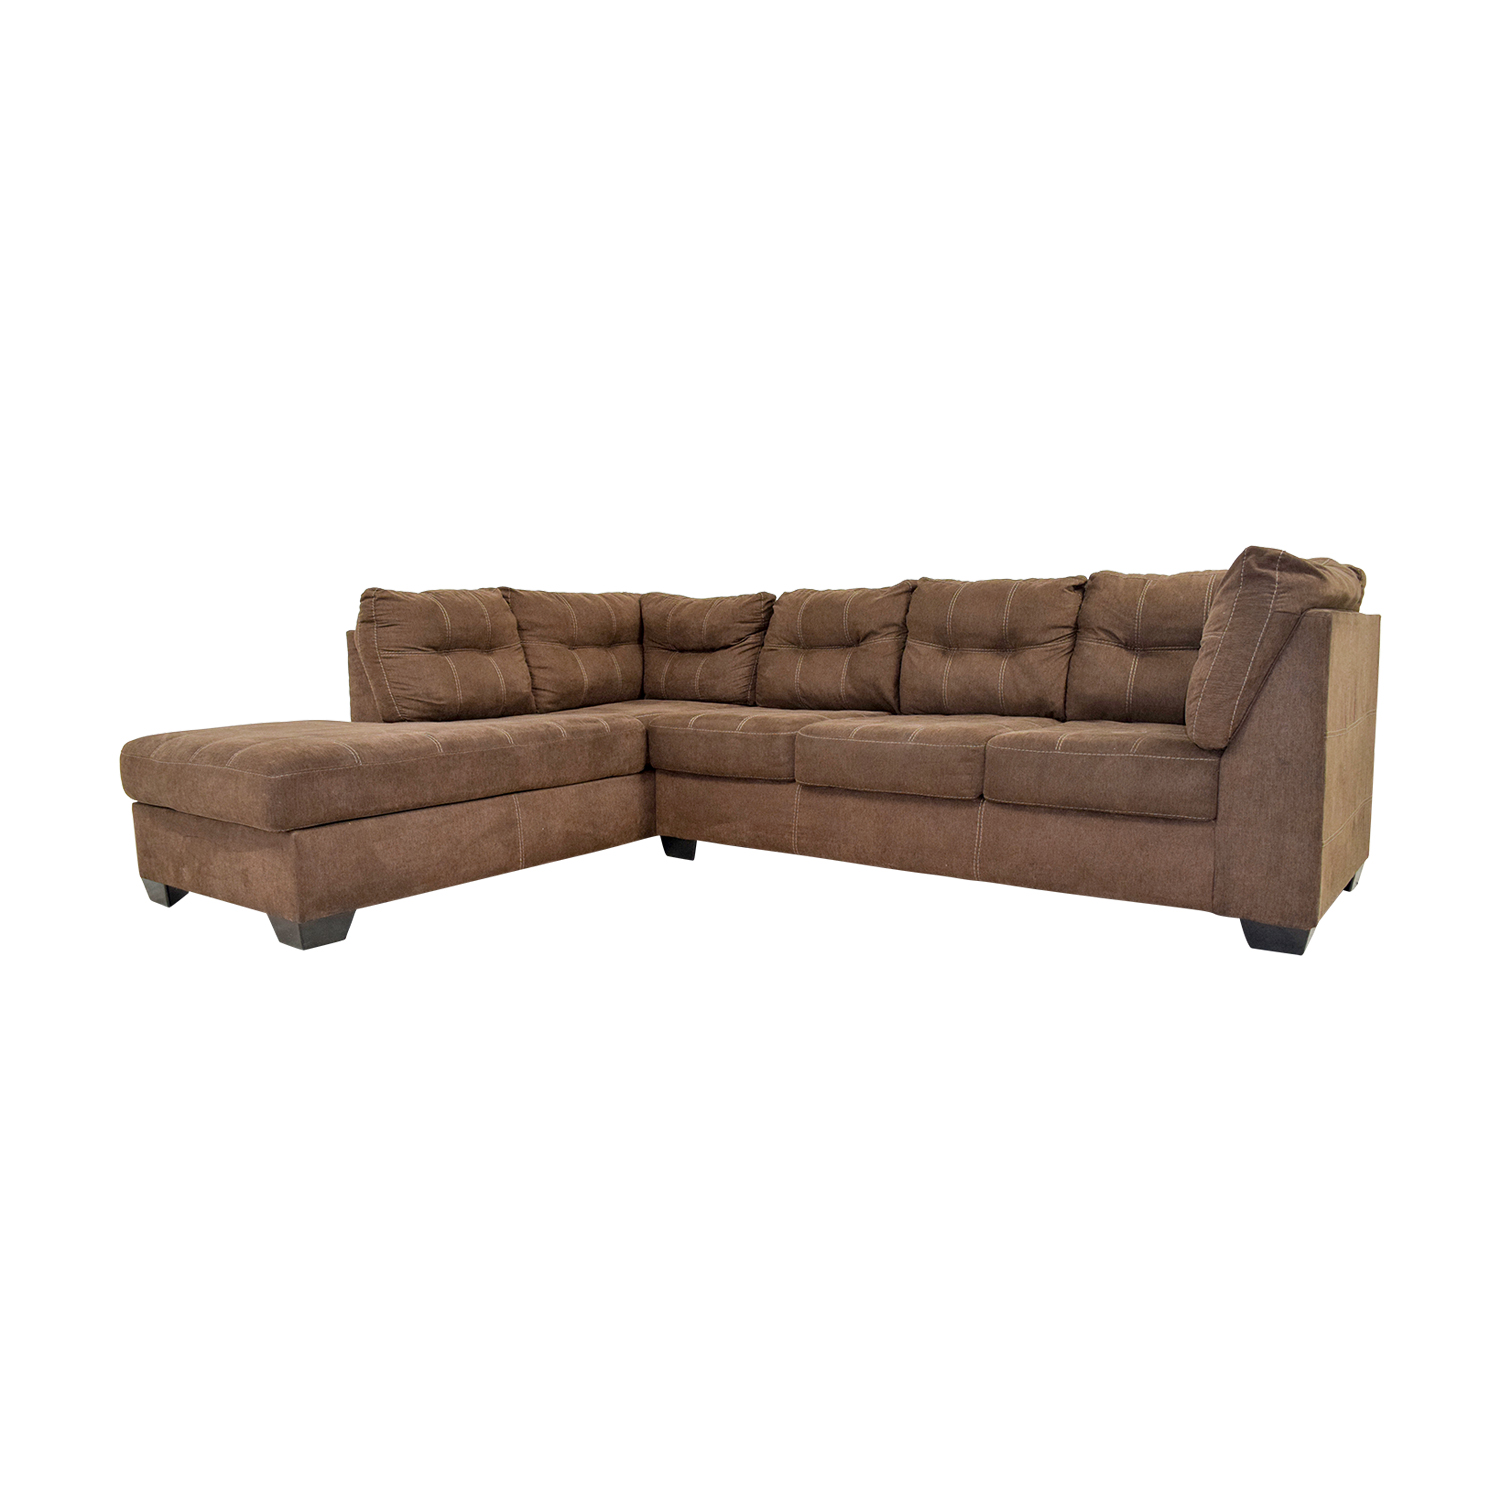 buy Brown L-Shaped Chaise Sectional Sofa online